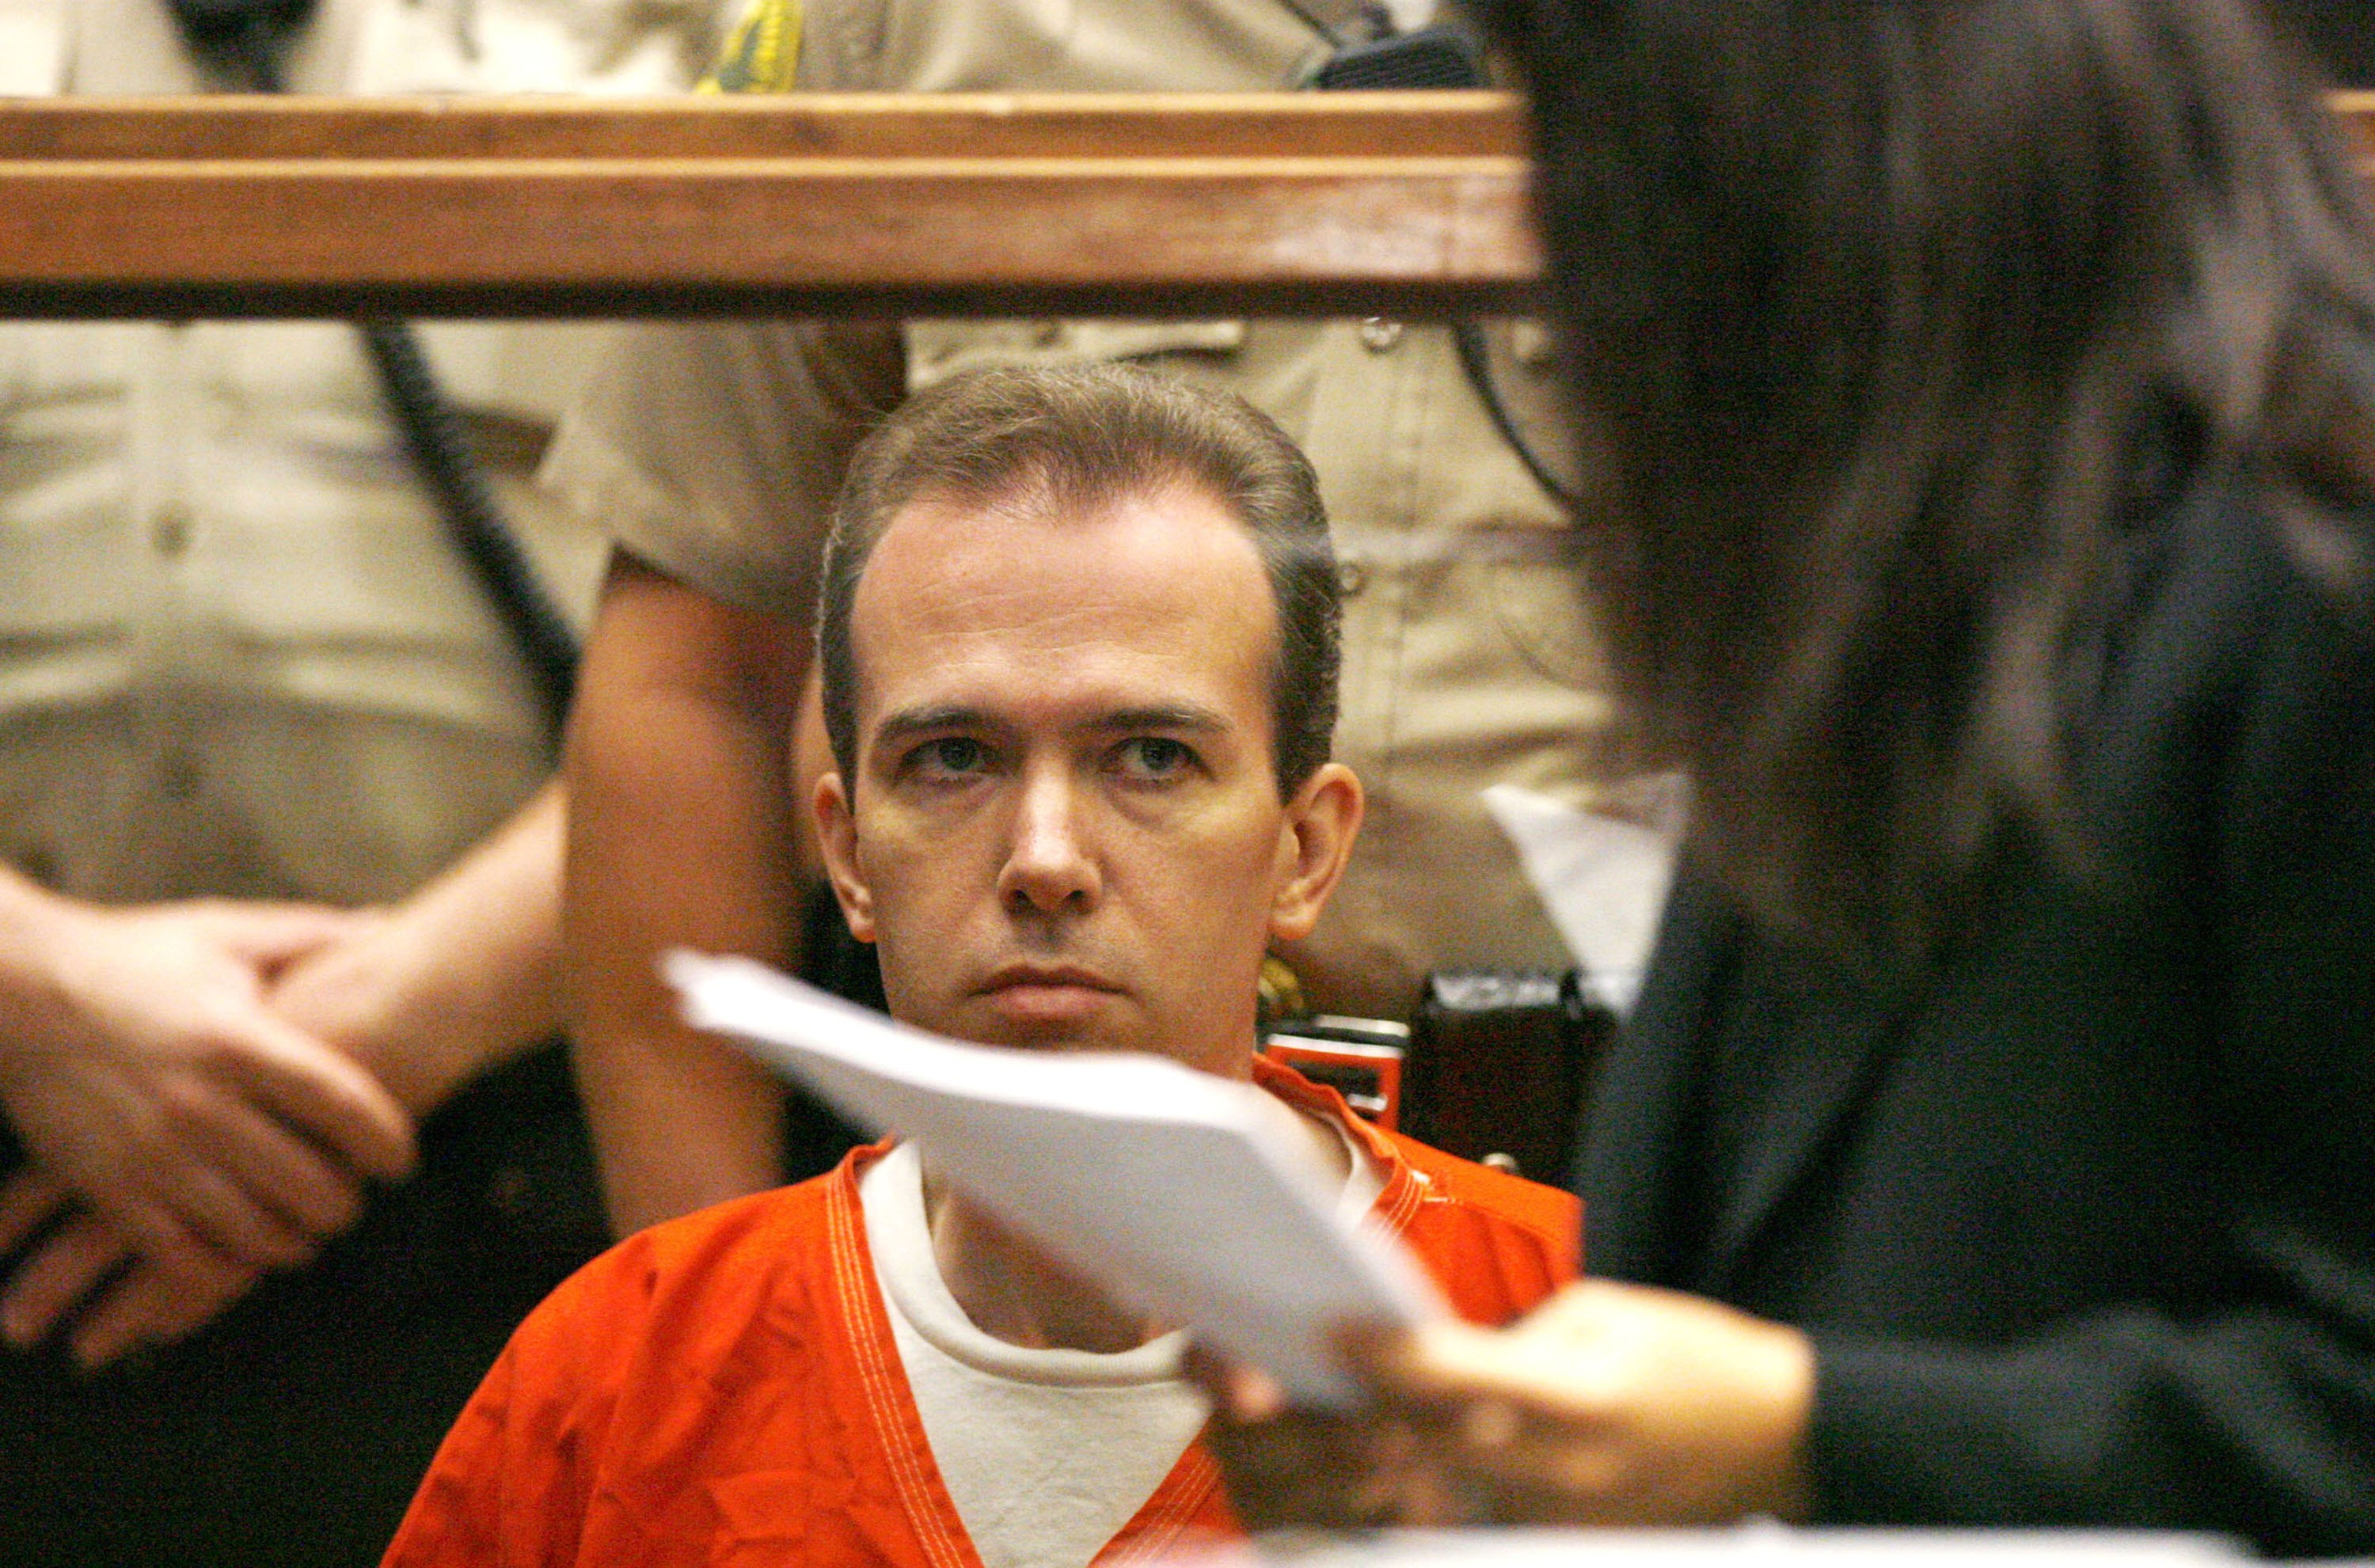 John Mark Karr, the suspect in the killing of child beauty queen JonBenet Ramsey, looks at deputy public defender Haydeh Takasugi during an extradition hearing at the Los Angeles Superior Court August 22, 2006 in Los Angeles, California. (Photo by Mario Anzuoni-Pool/Getty Images)